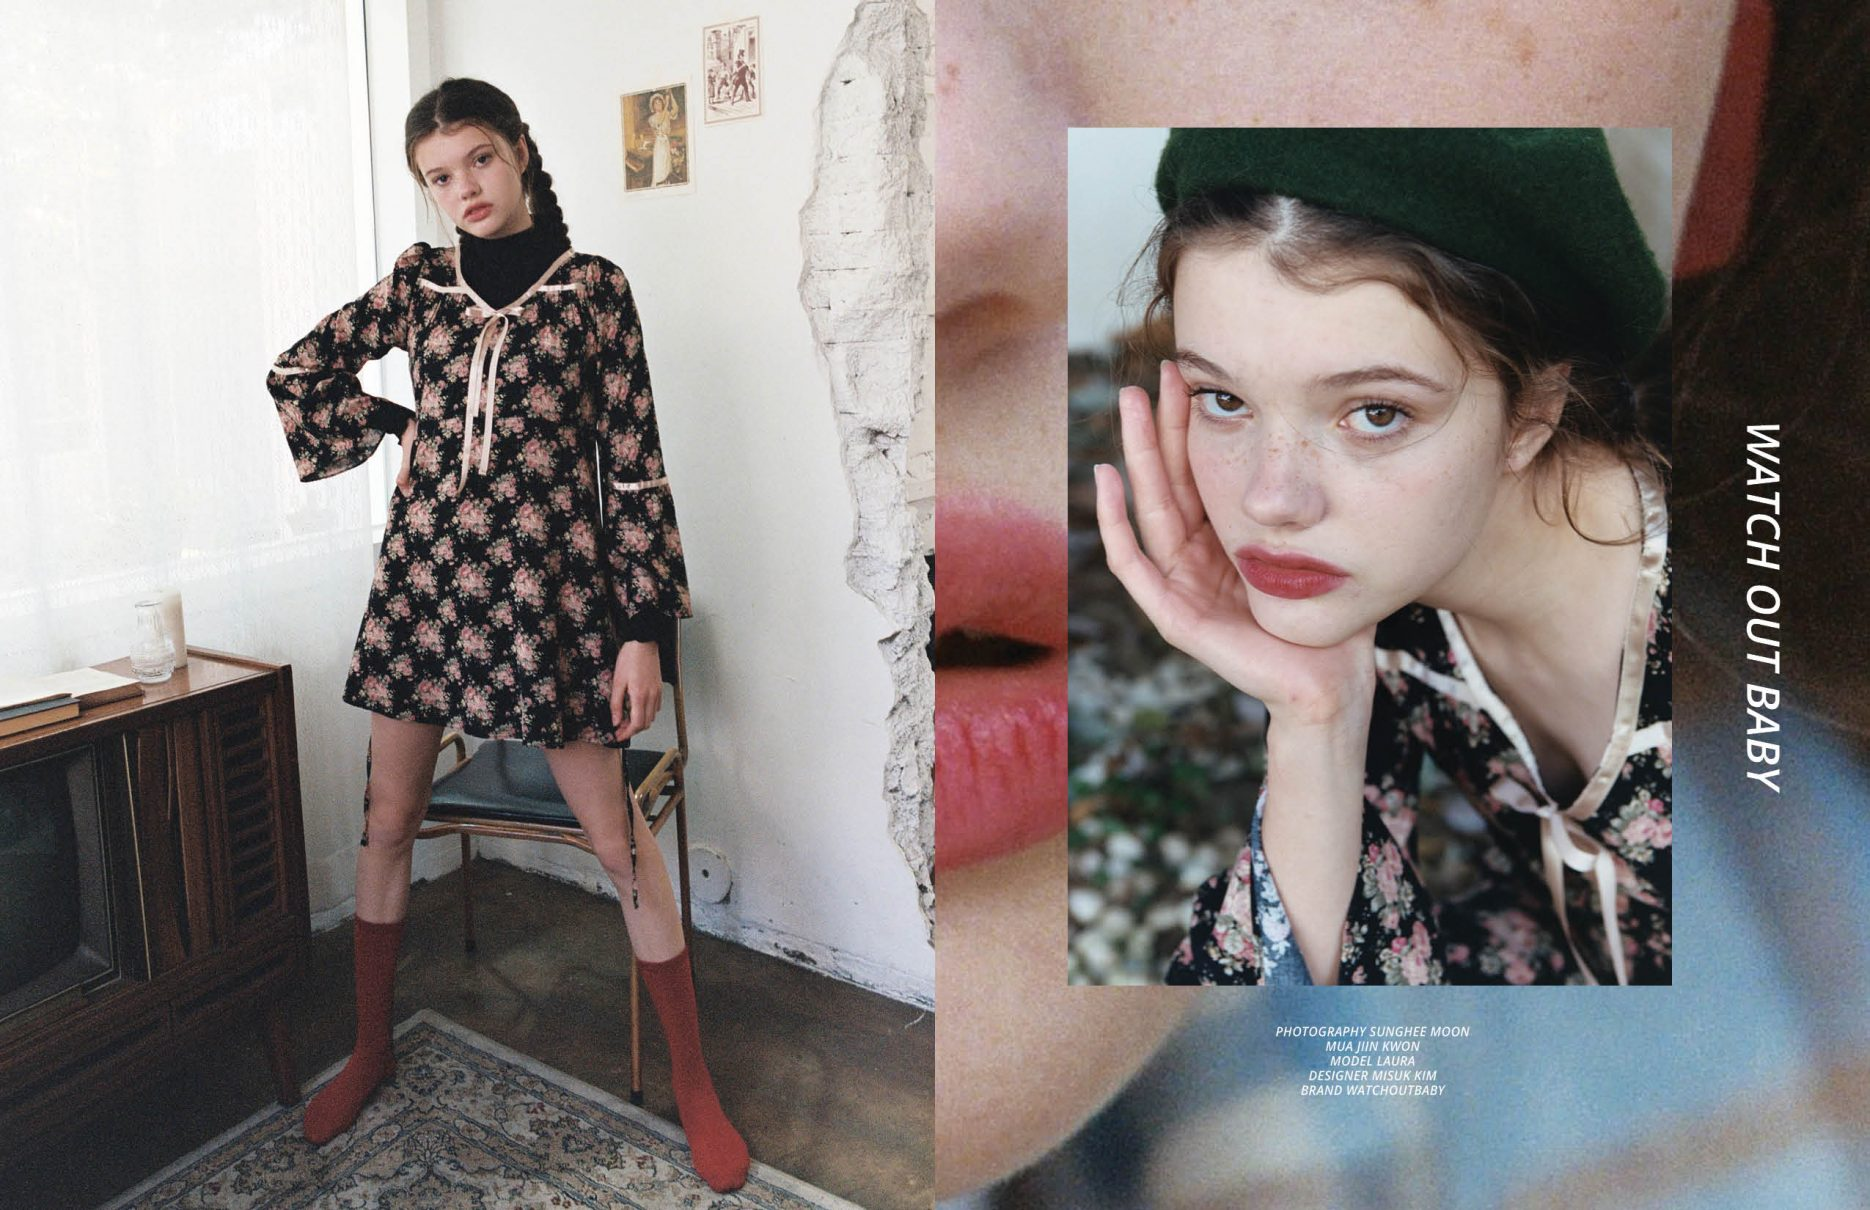 """""""Watch out baby"""" by Sunghee Moon with Laura from Made by Milk Poland Agency for Keyi Magazine Berlin with designer Misuk Kim"""